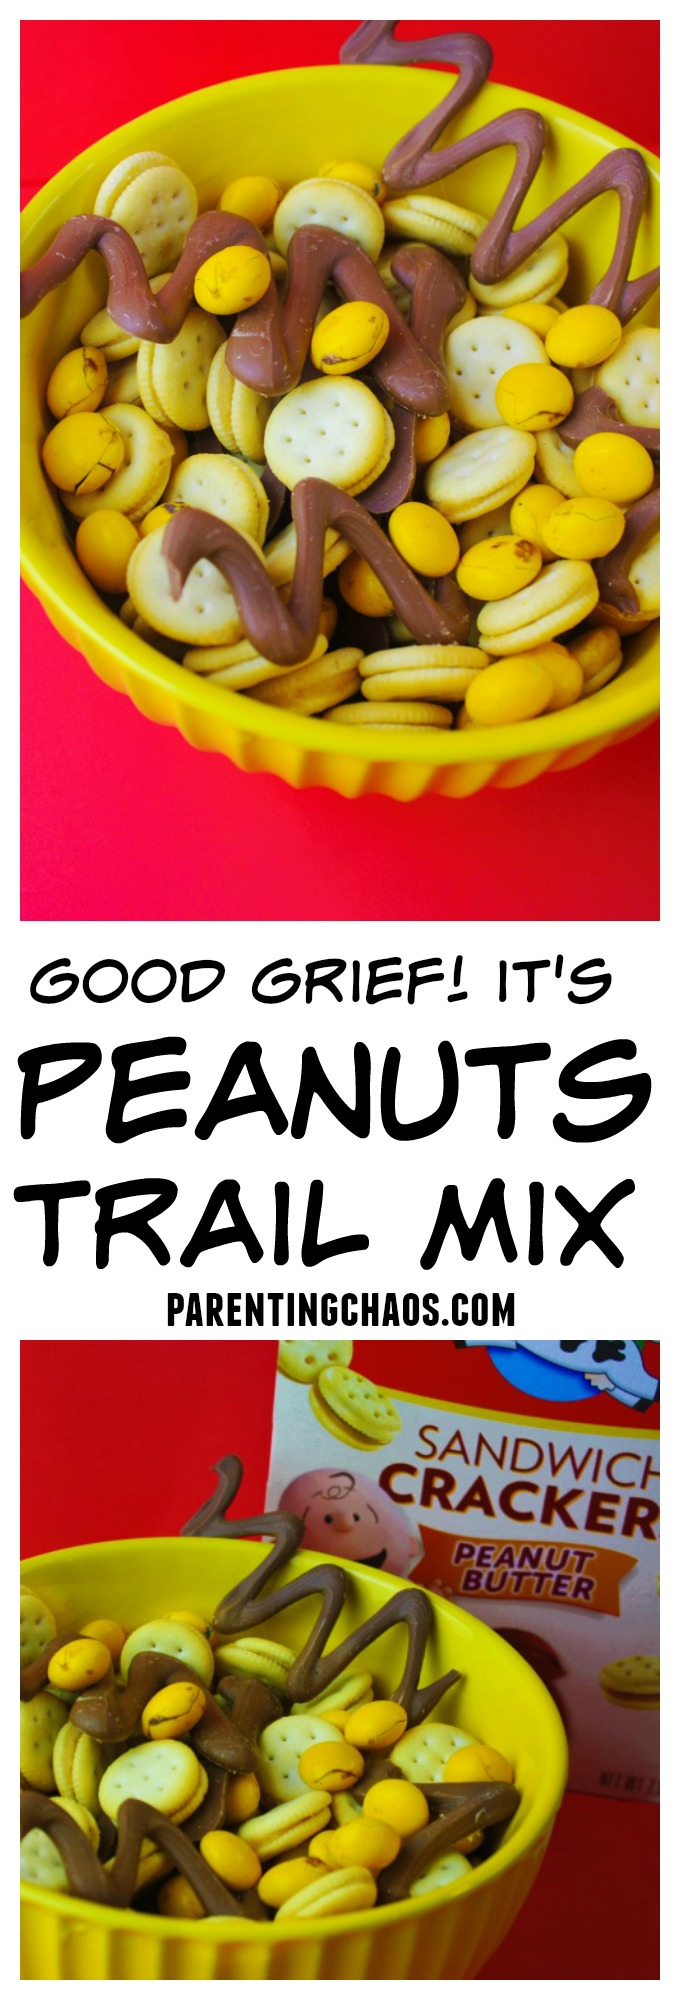 Good Grief this Peanuts Trail Mix is Simple to Make!